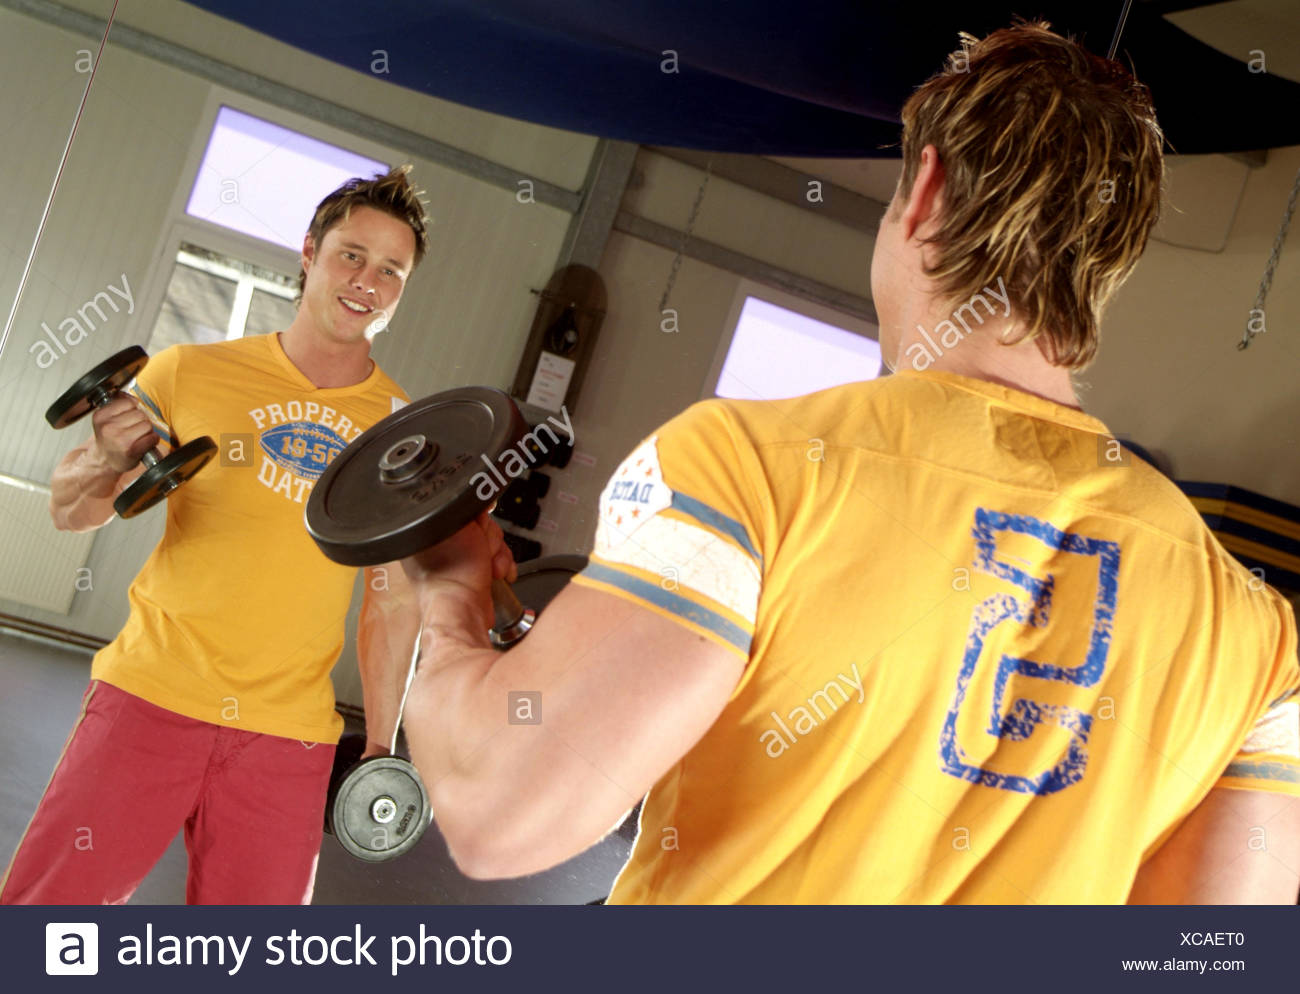 Young, beefy man trains with dumbbells - Stock Image